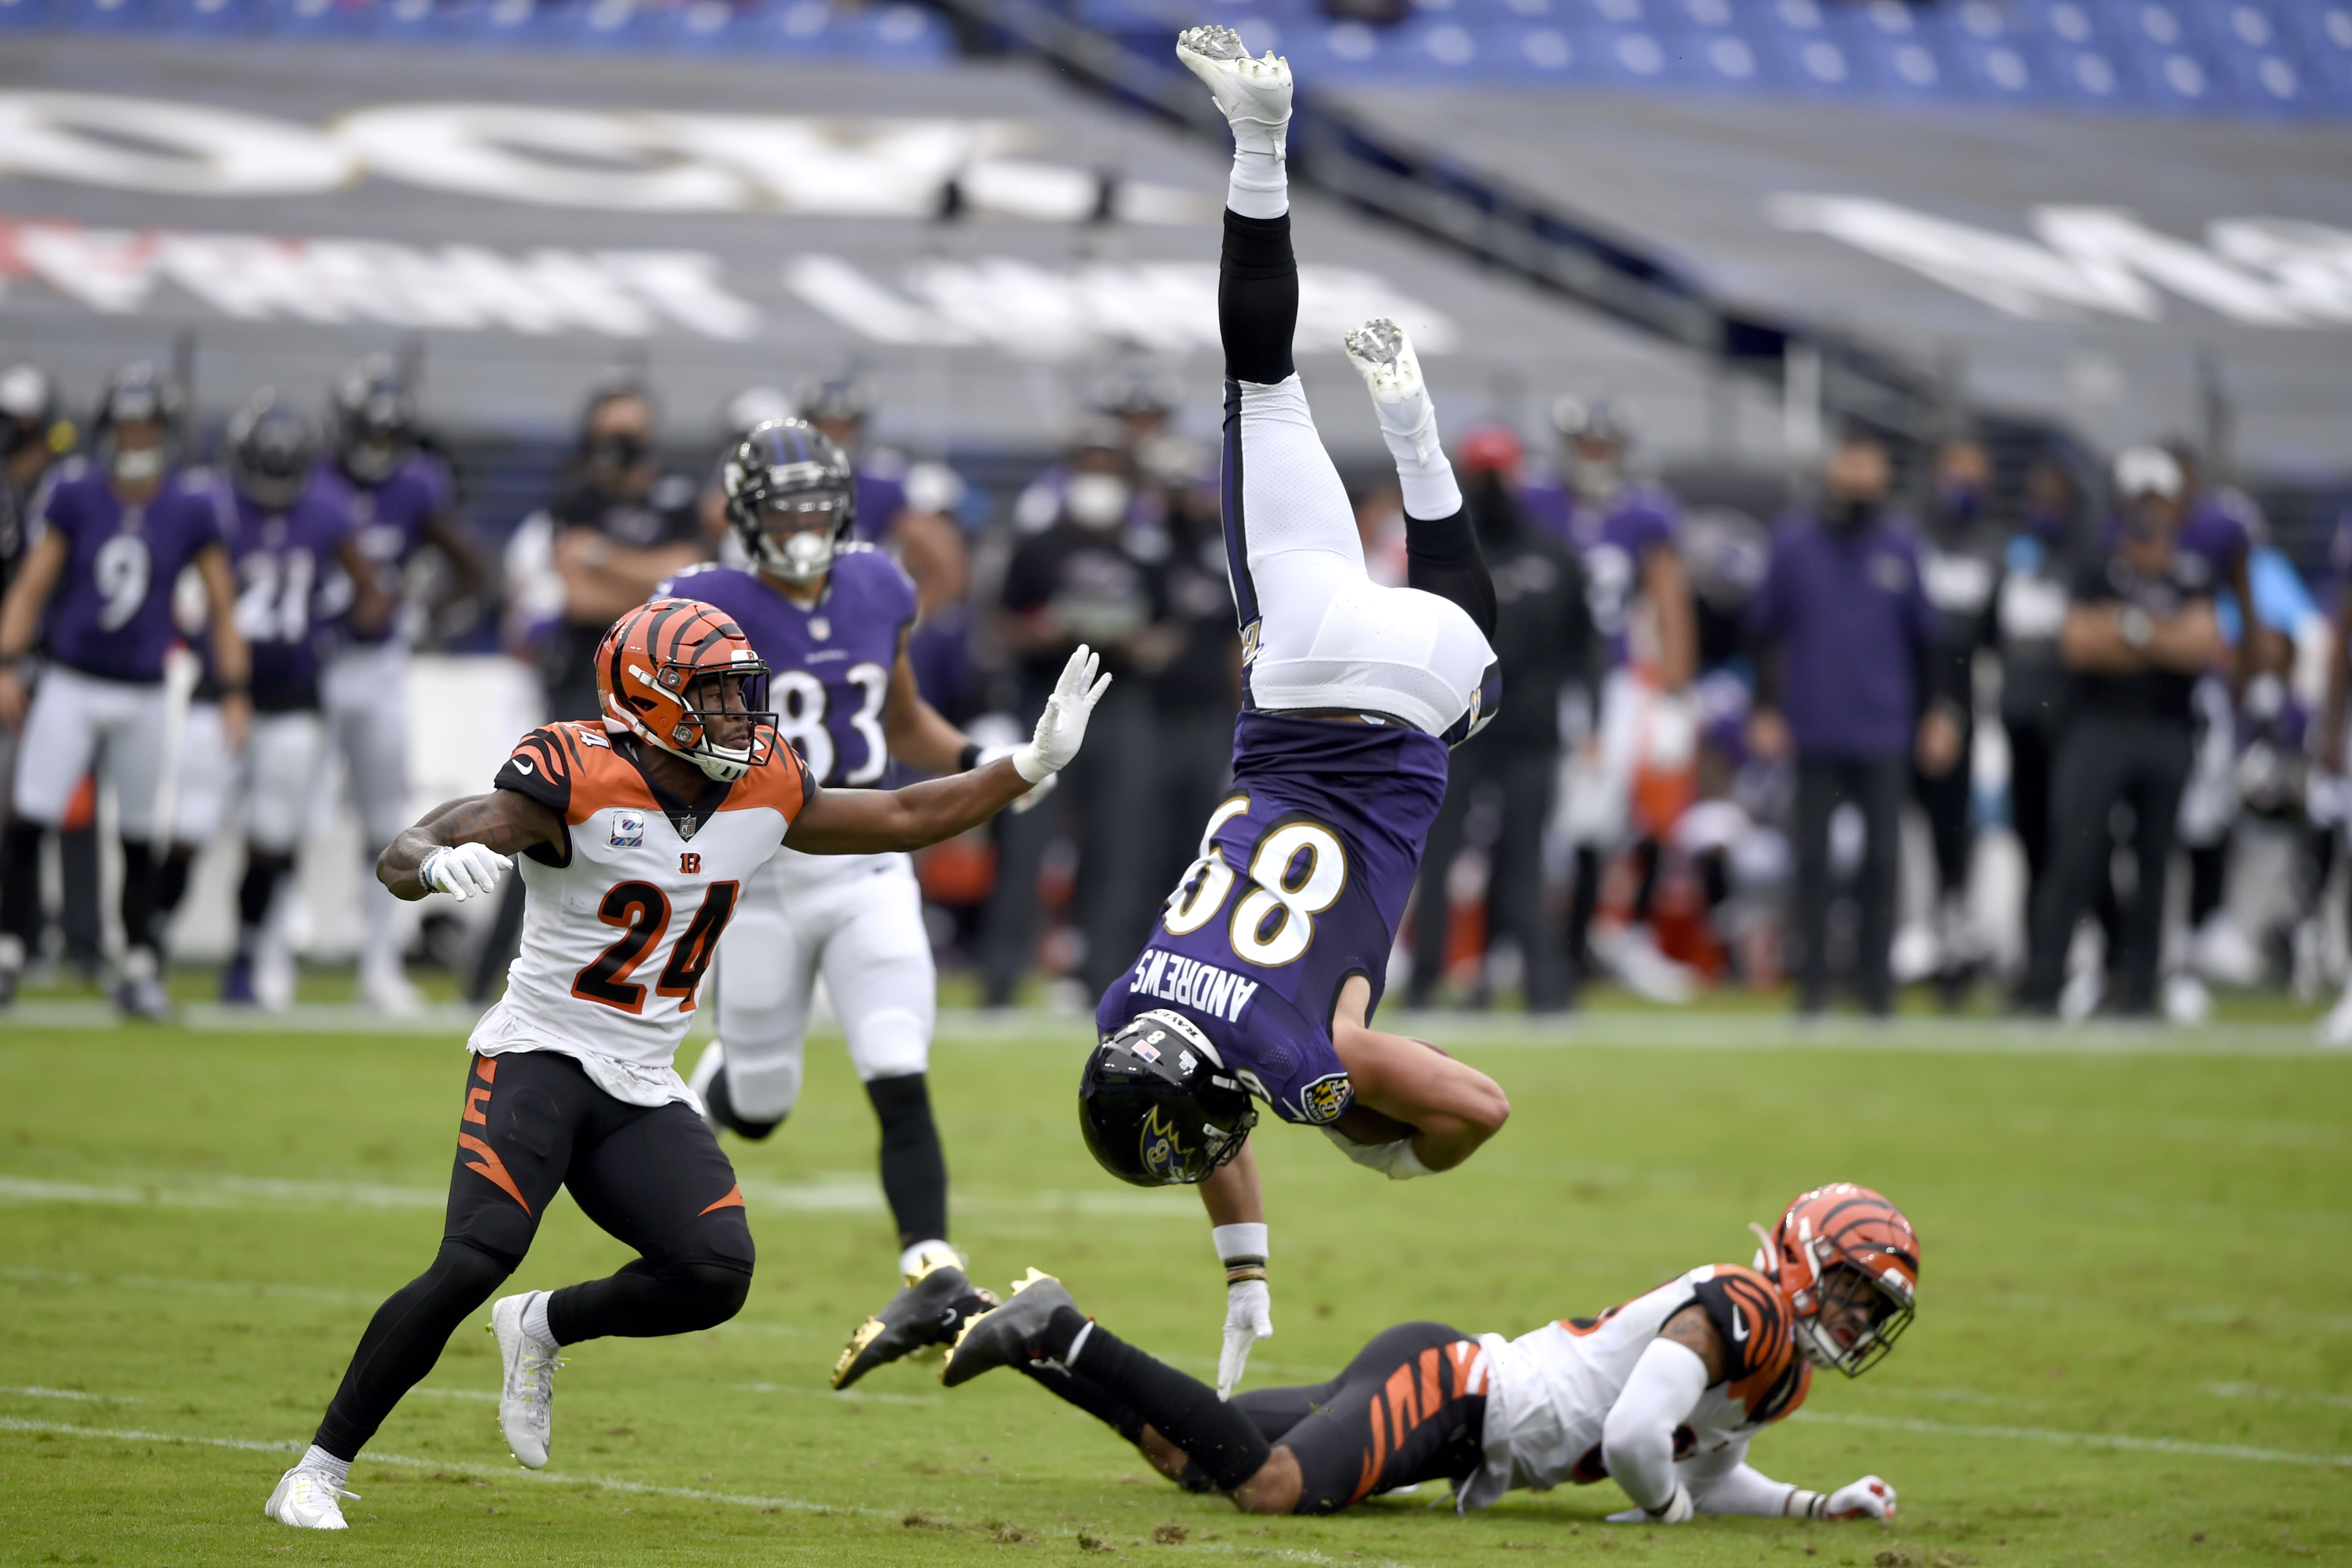 Baltimore Ravens tight end Mark Andrews (89) is upended by Cincinnati Bengals free safety Jessie Bates, right, after making a catch during the first half of an NFL football game, Sunday, Oct. 11, 2020, in Baltimore. (AP Photo/Gail Burton)